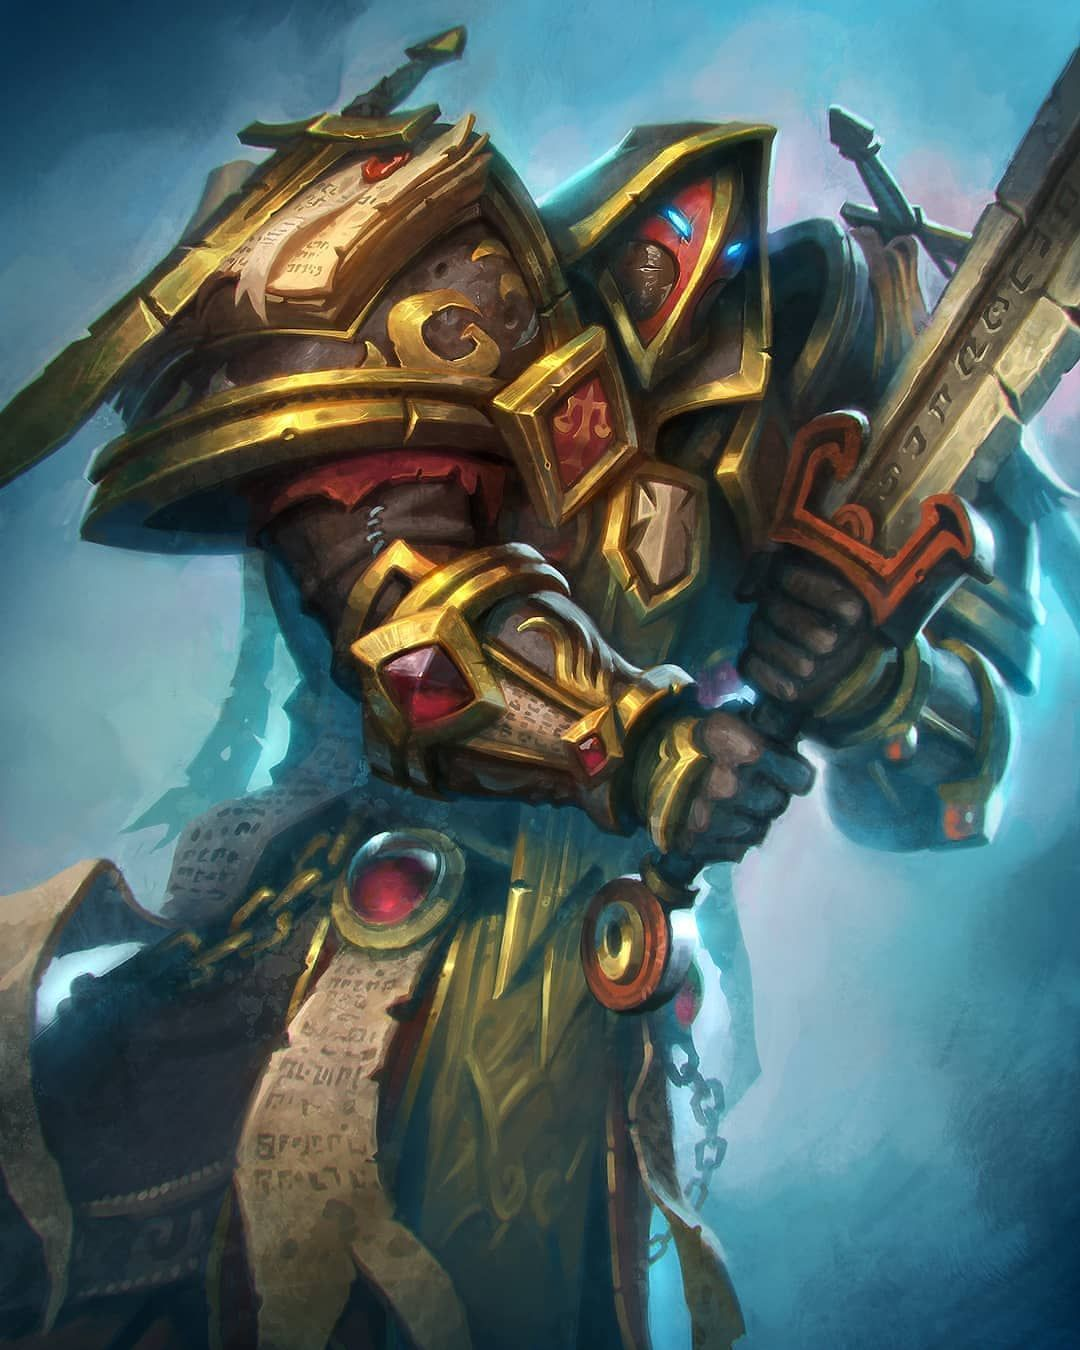 Alliance Paladin Tier 2 Judgement Art By Caio Monteiro Caiomonteiroart If You Want To World Of Warcraft Paladin Warcraft Art World Of Warcraft Characters